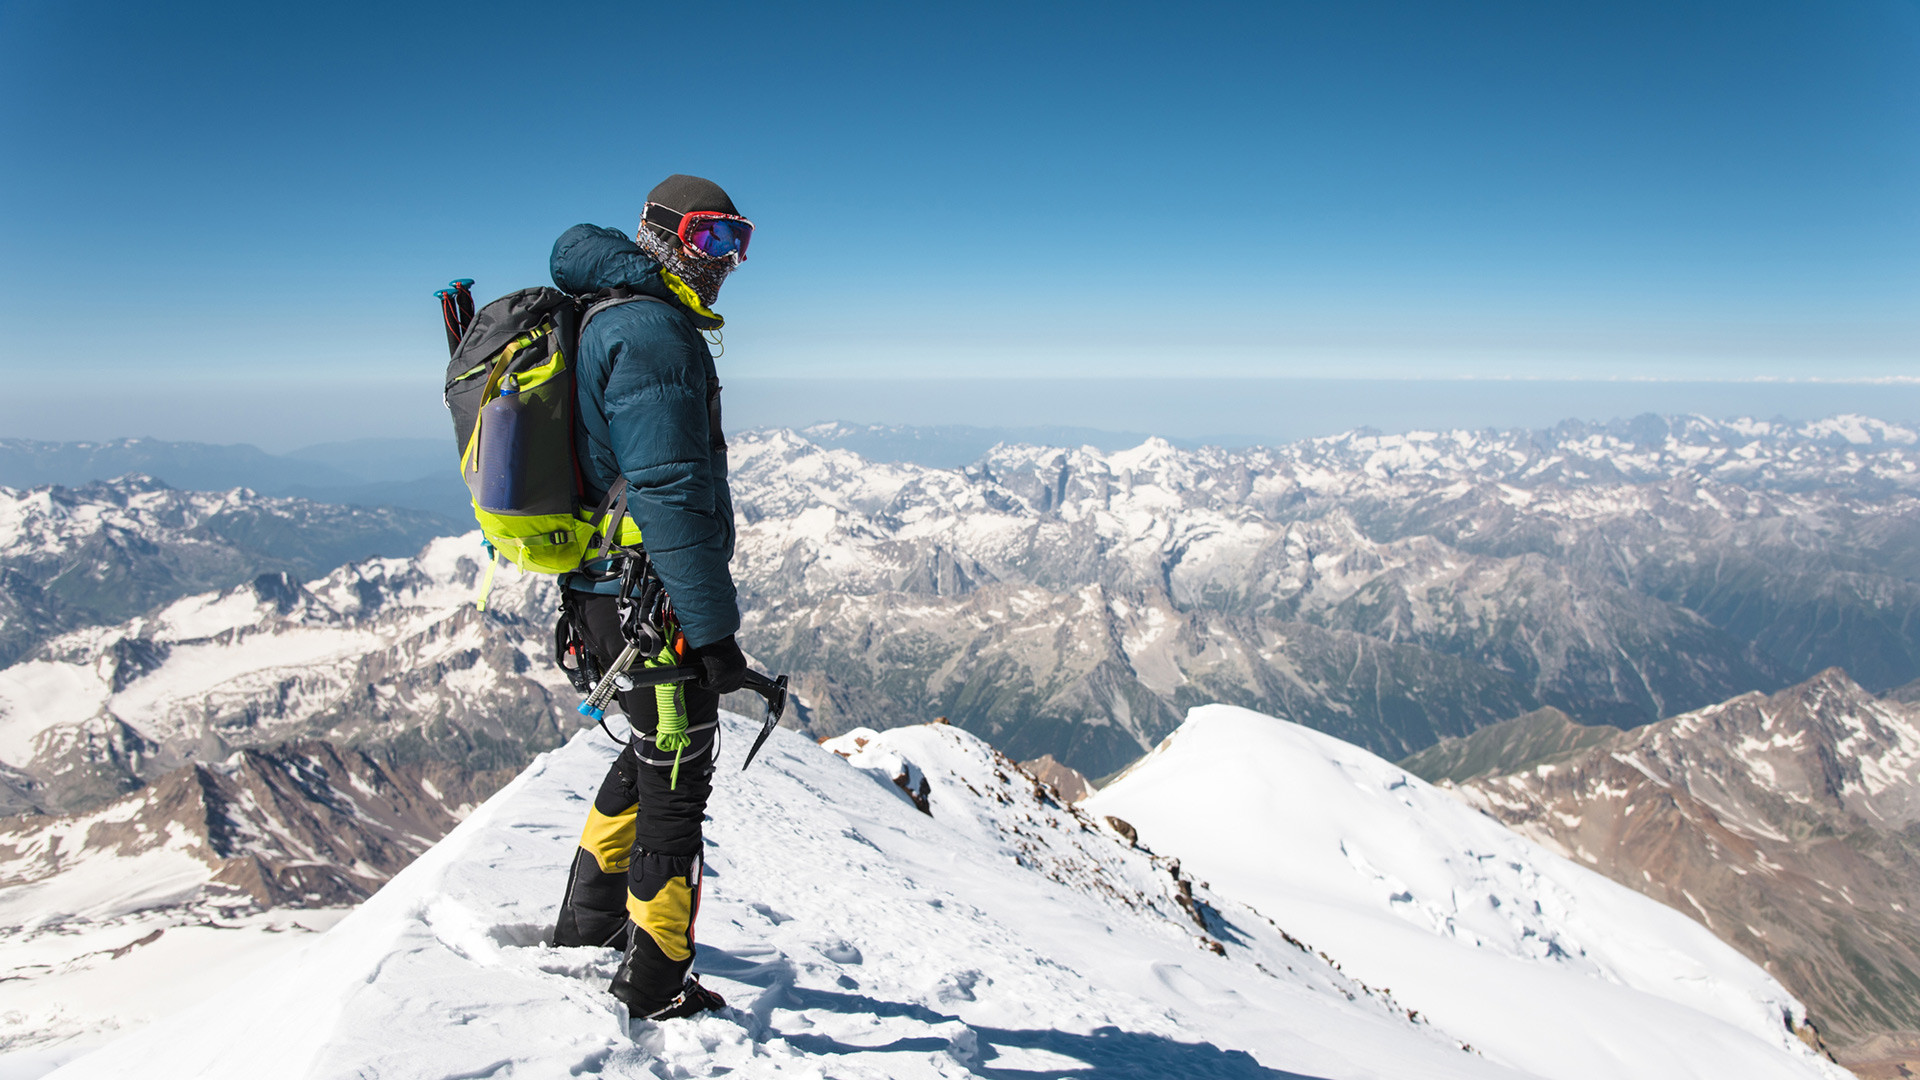 Professional guide-climber on the snow-covered summit of Elbrus sleeping volcano.